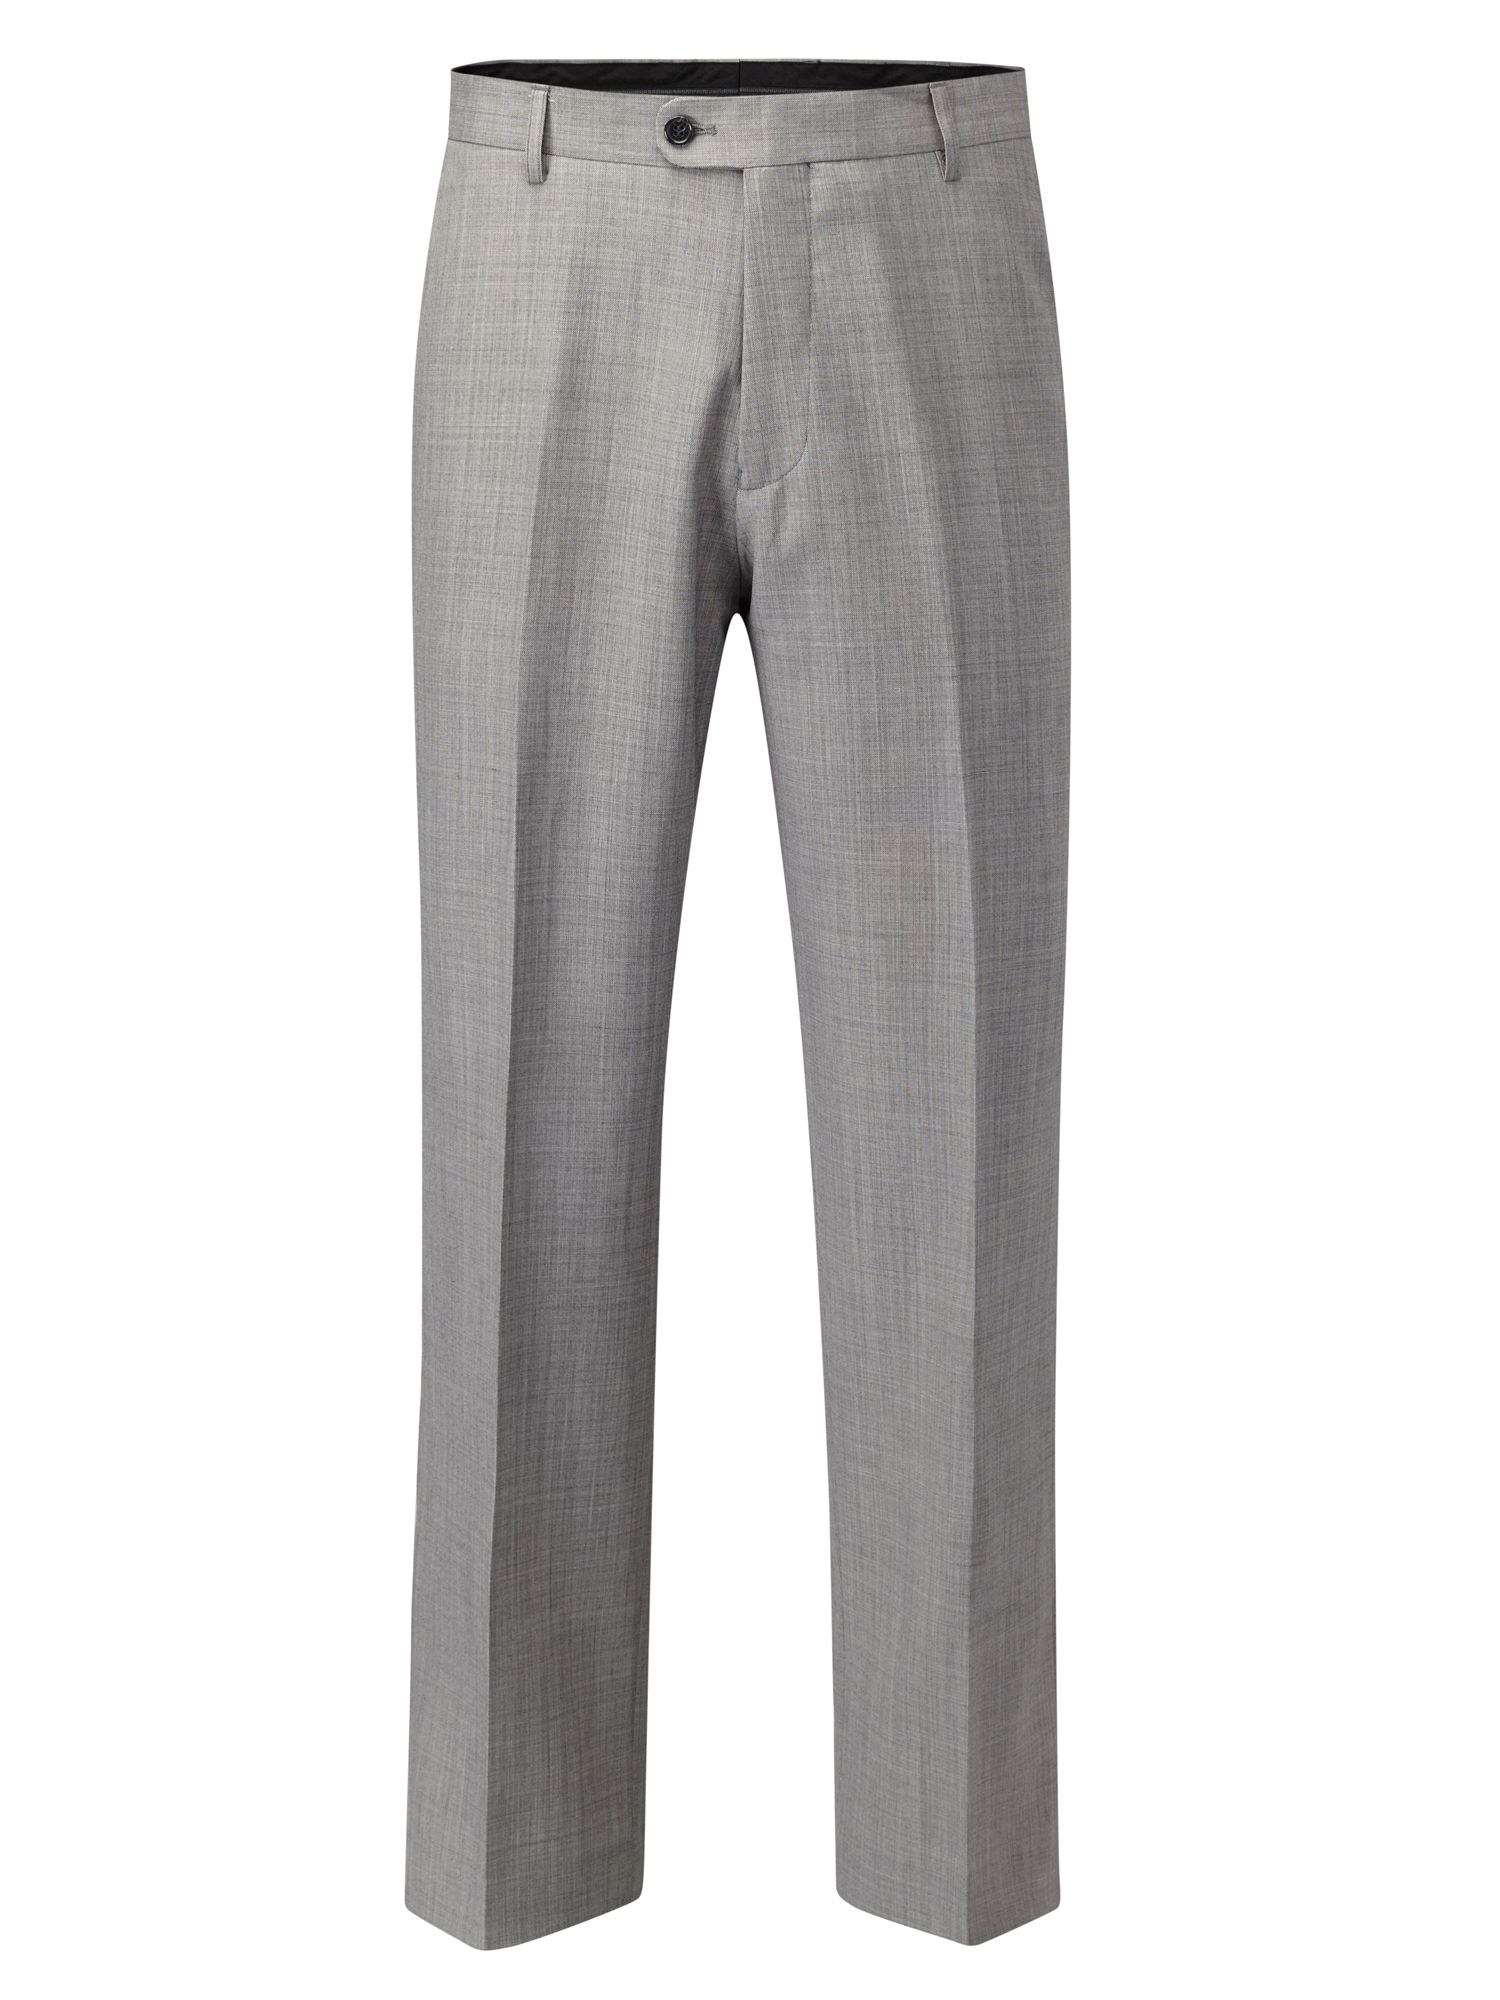 Mens Skopes Palmer Plain Classic Fit Suit Trousers £52.00 AT vintagedancer.com